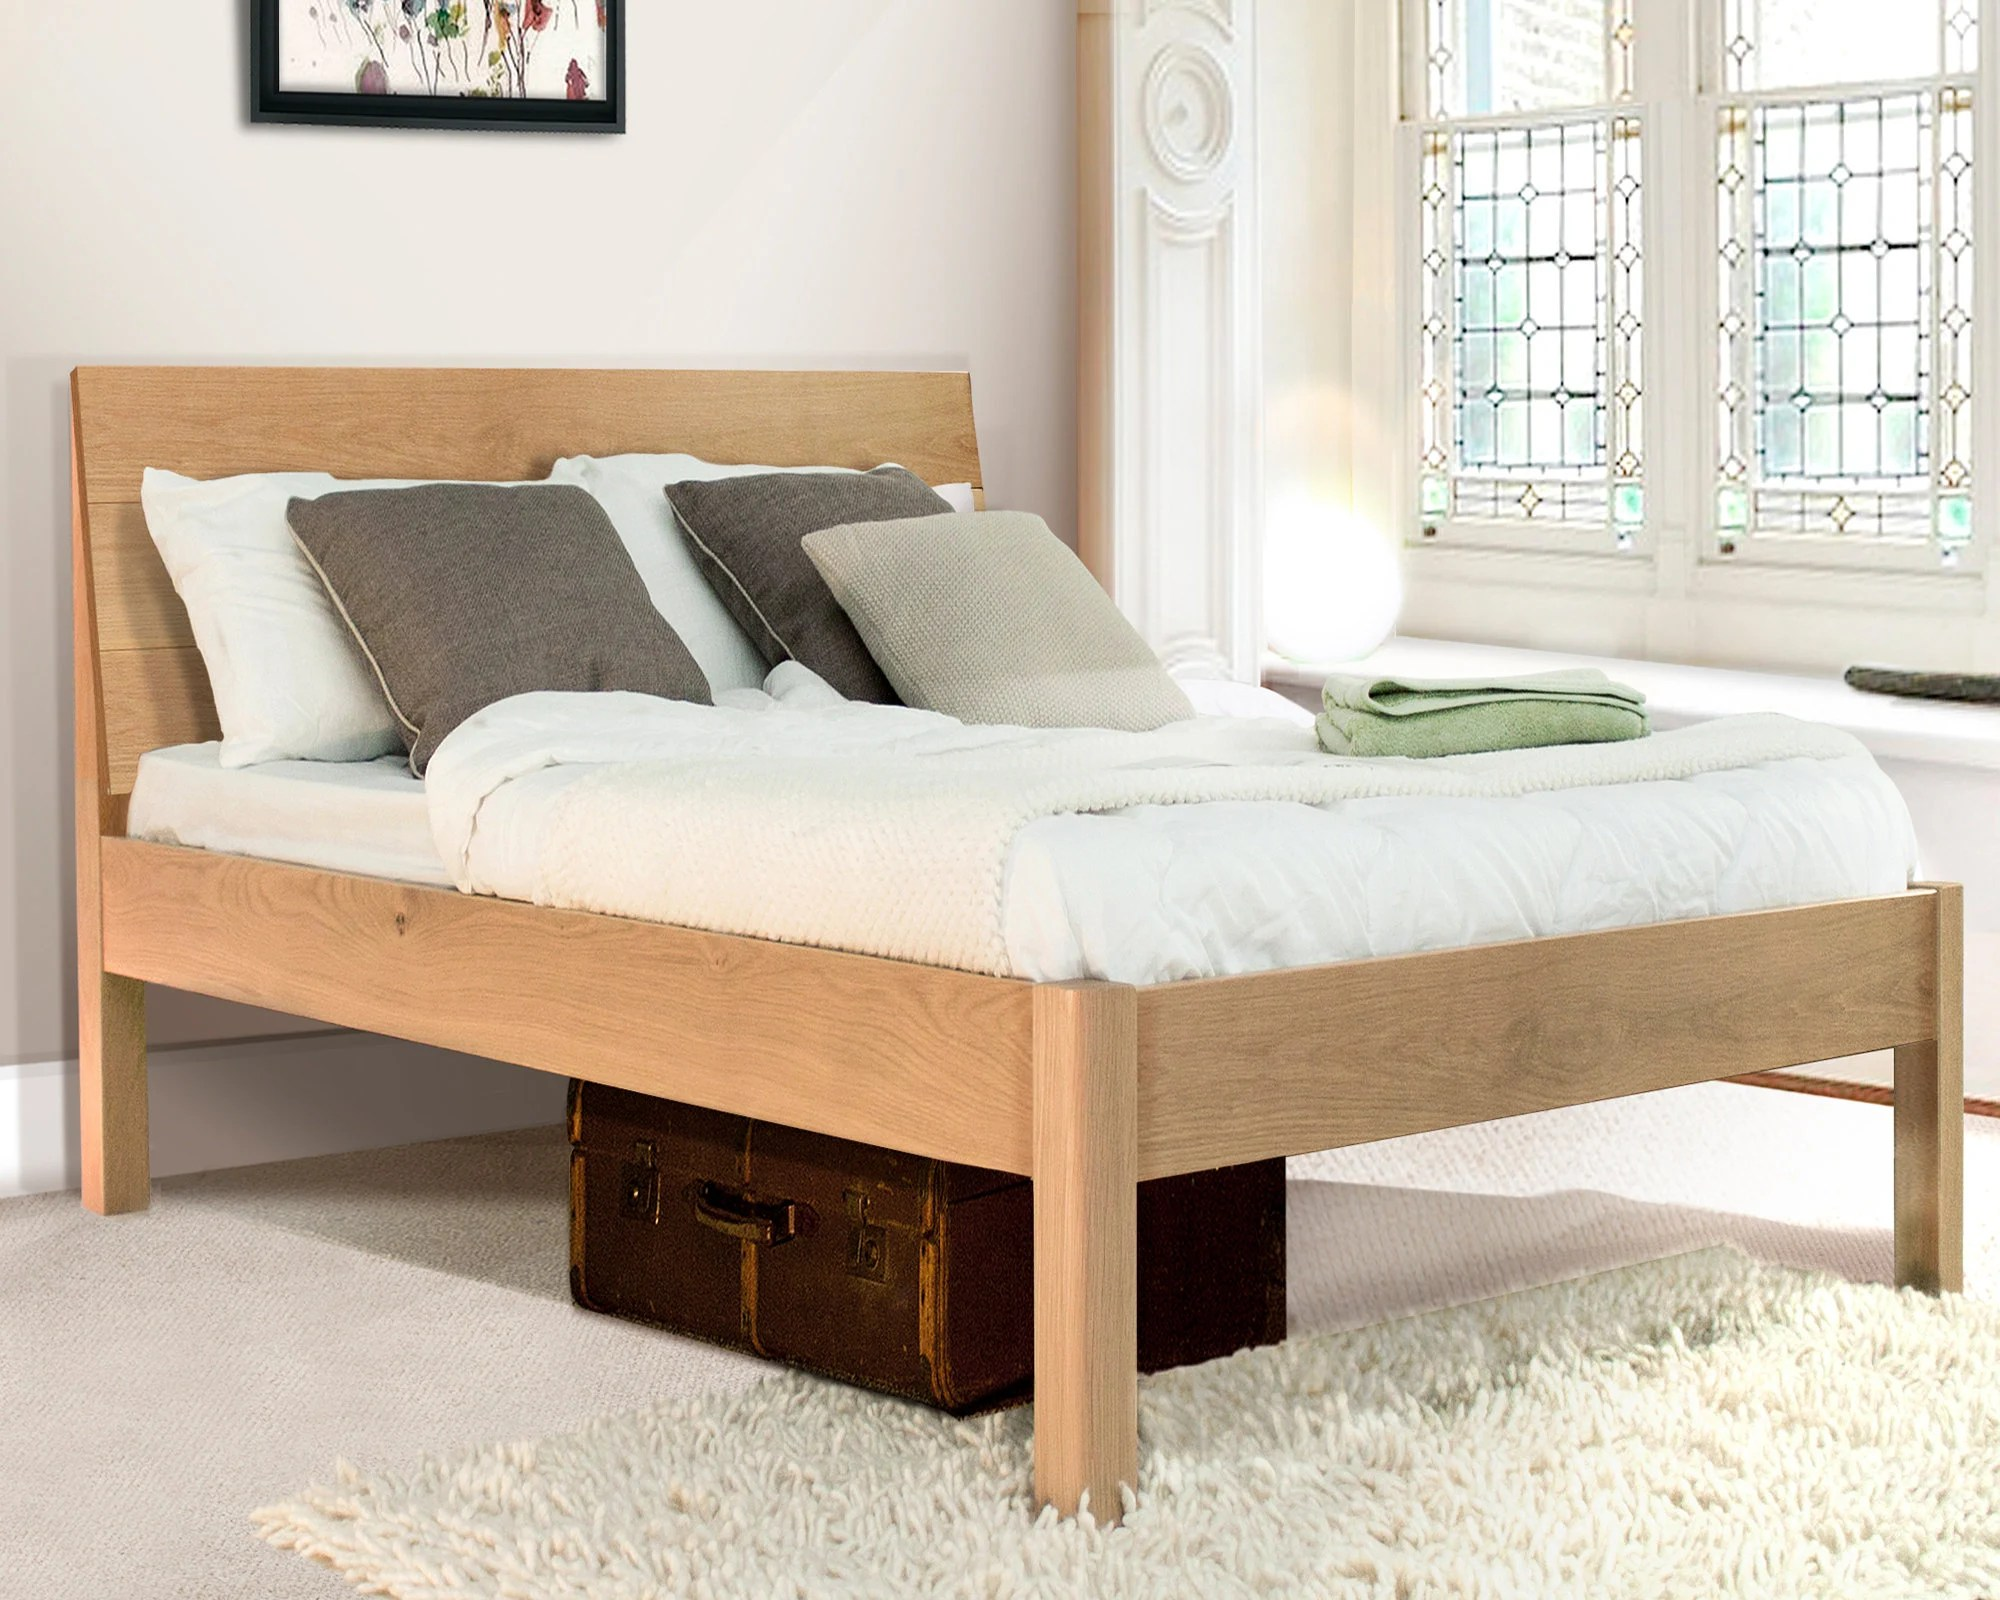 Wooden Beds Kensington Wooden Bed Frame By Get Laid Beds